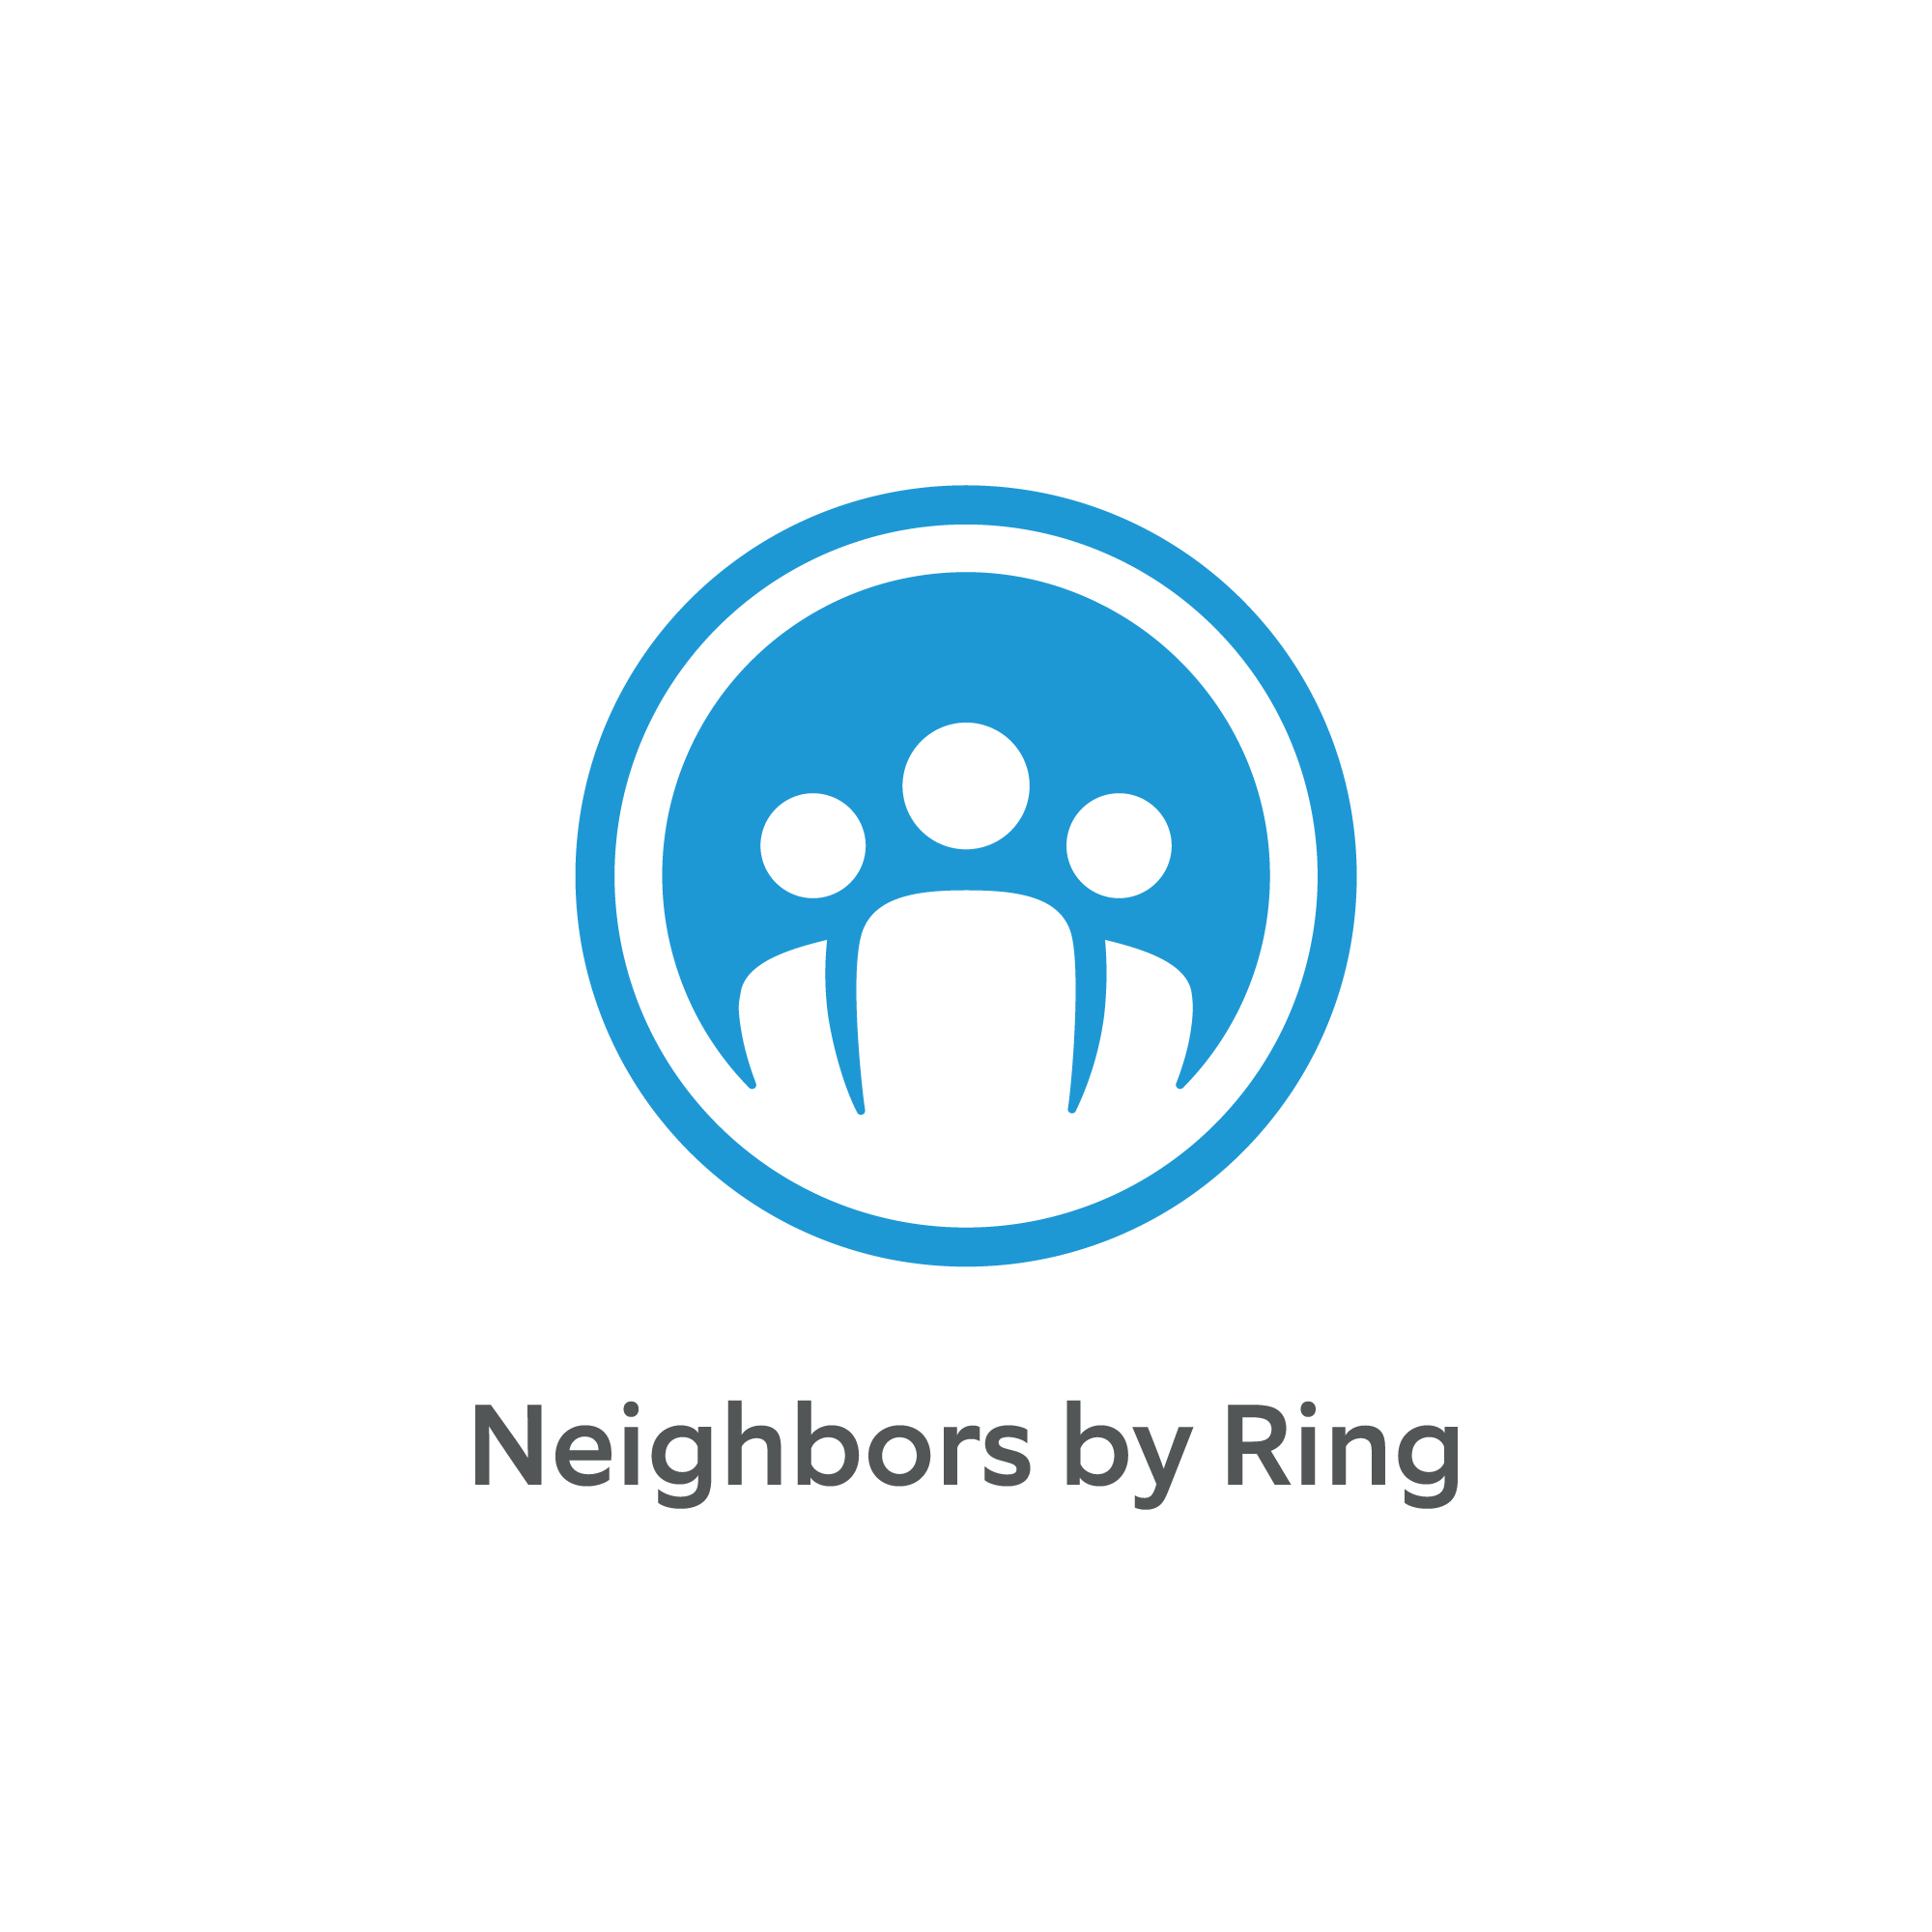 Colleyville Police Department Joins 'Neighbors' by Ring to Provide Users with Real-Time, Local Crime and Safety Information